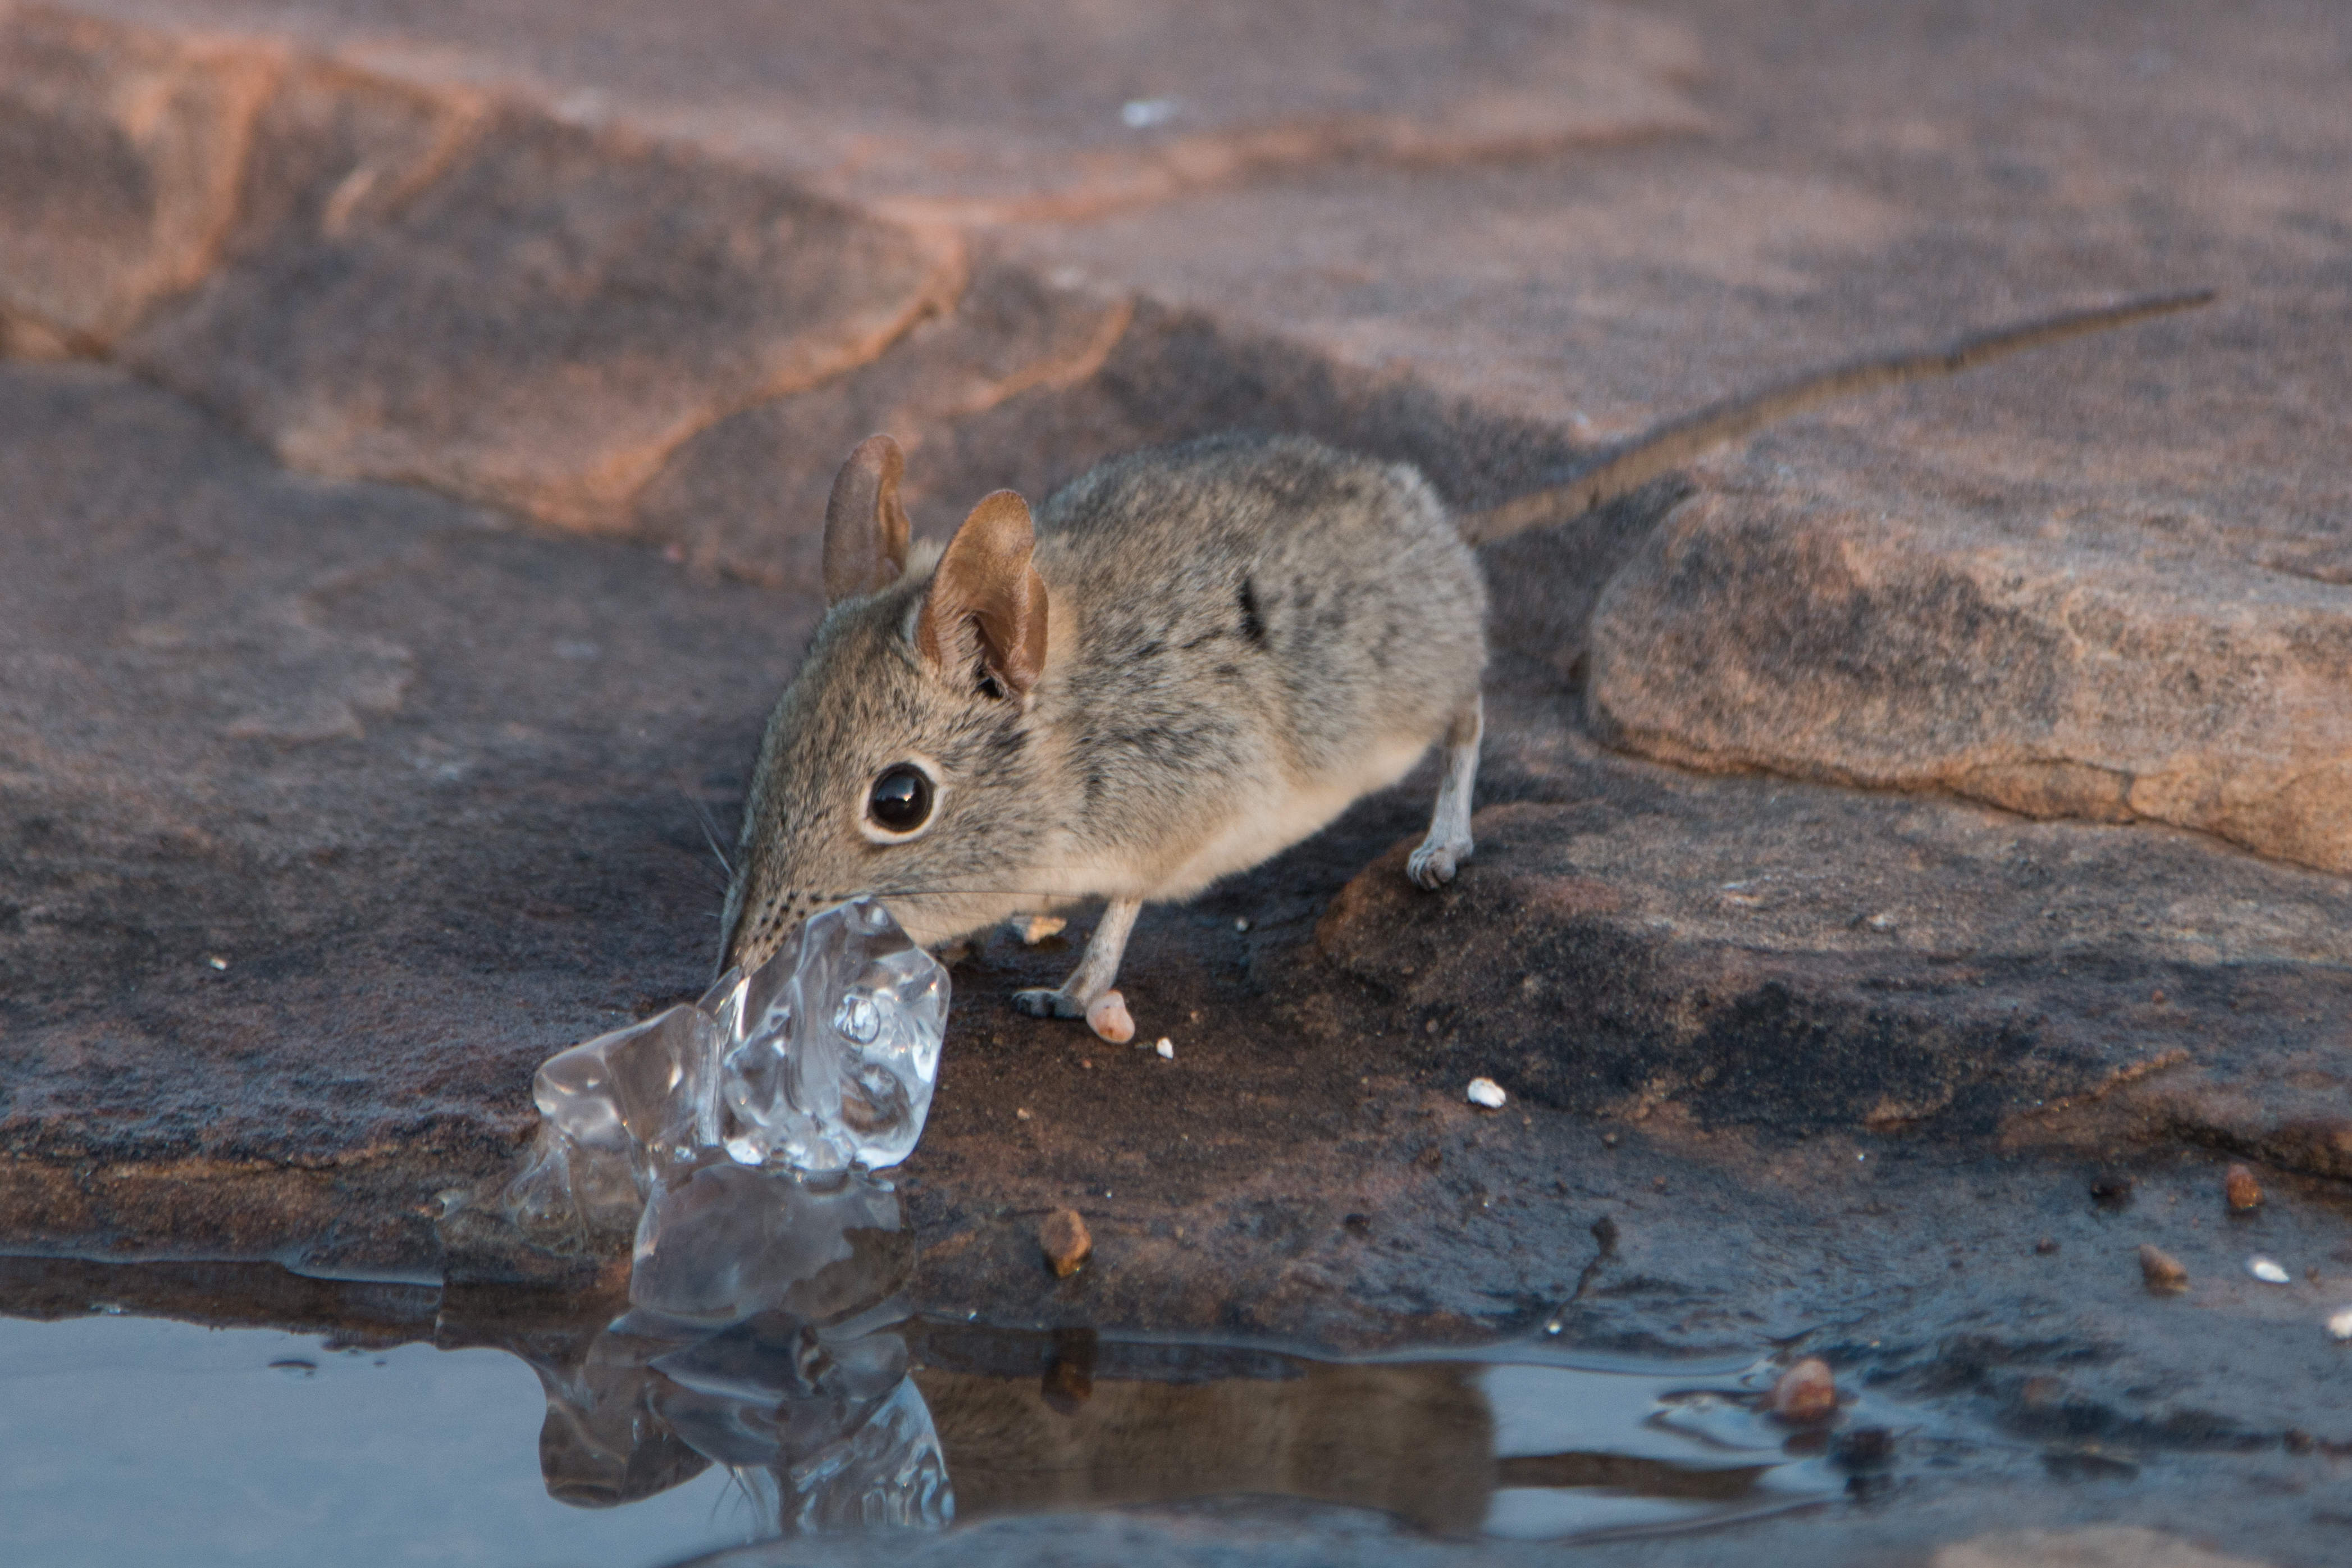 Rüsselspringer - Elephant Shrew